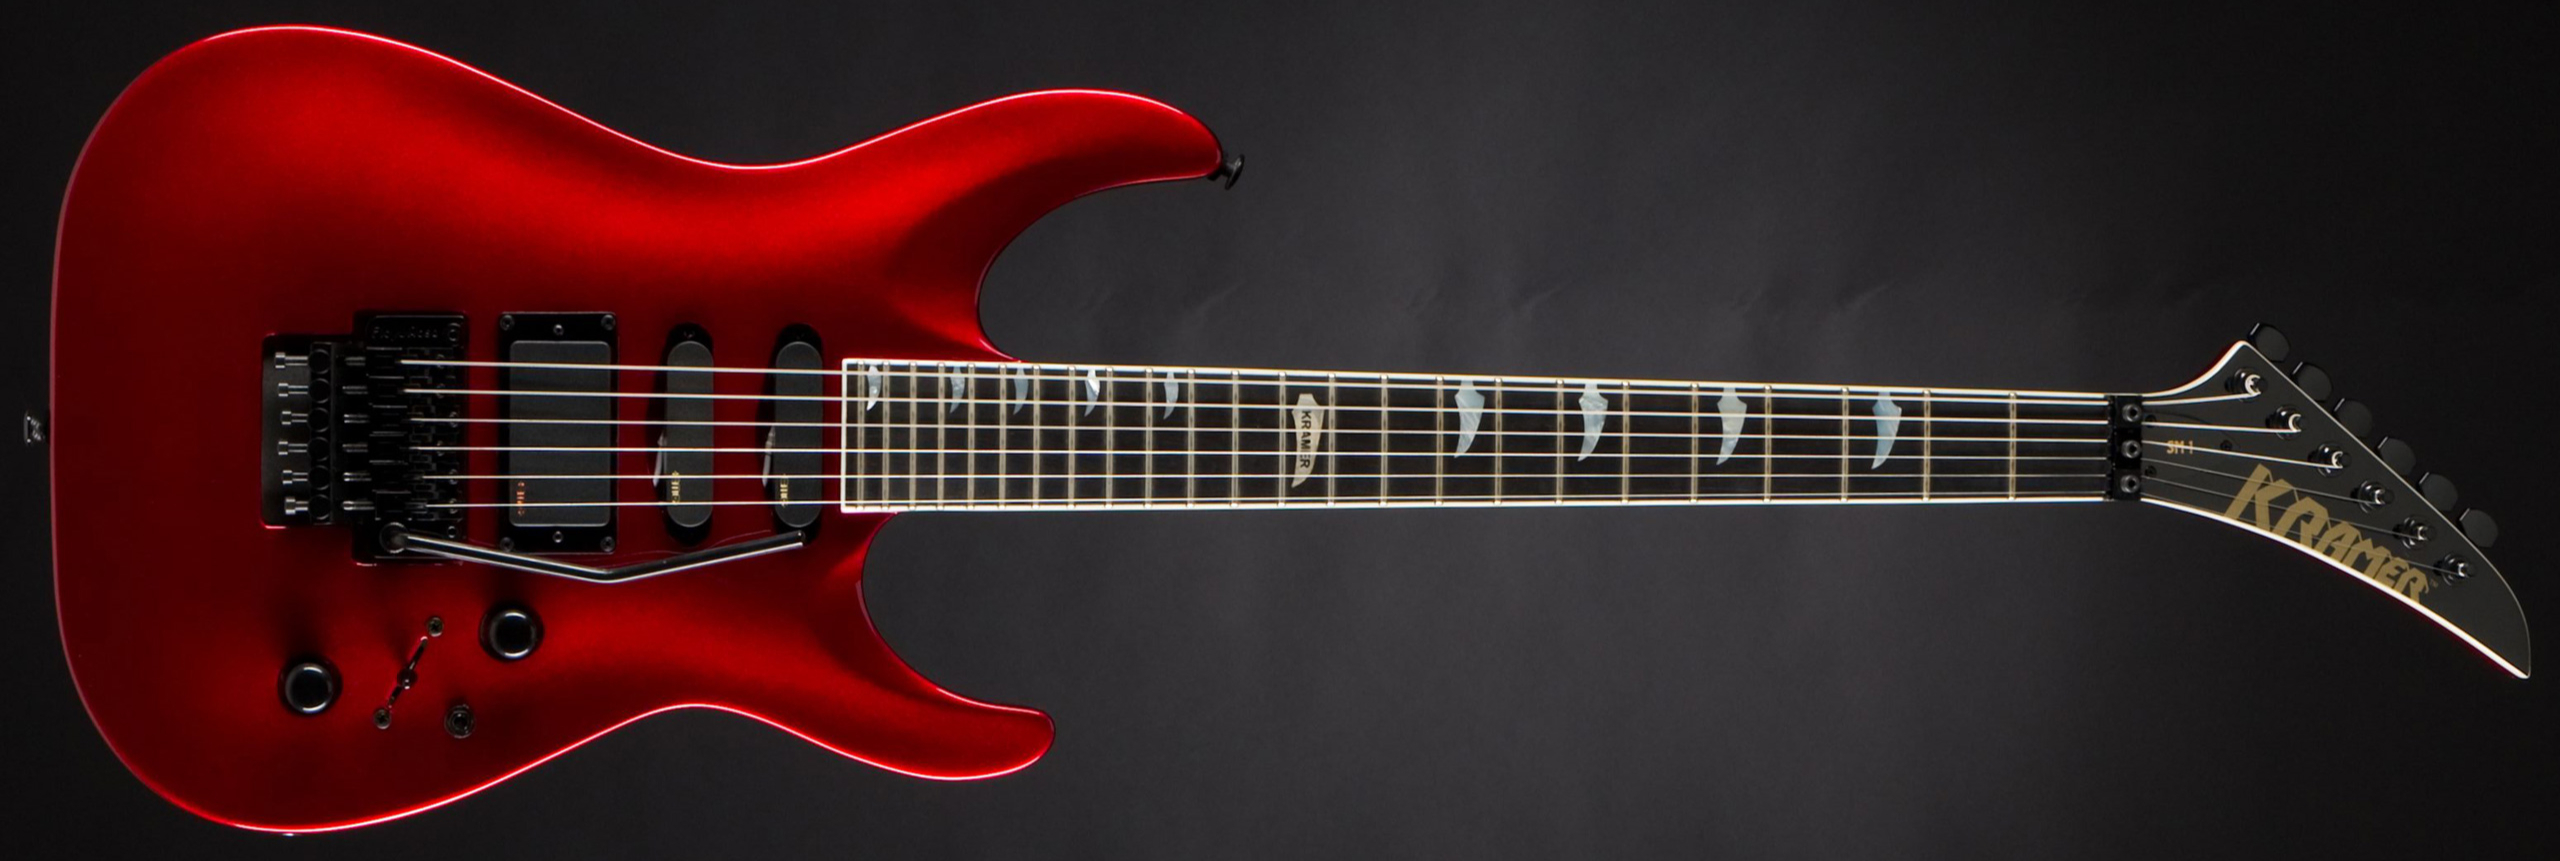 KRAMER SM-1 EMG Candy Red